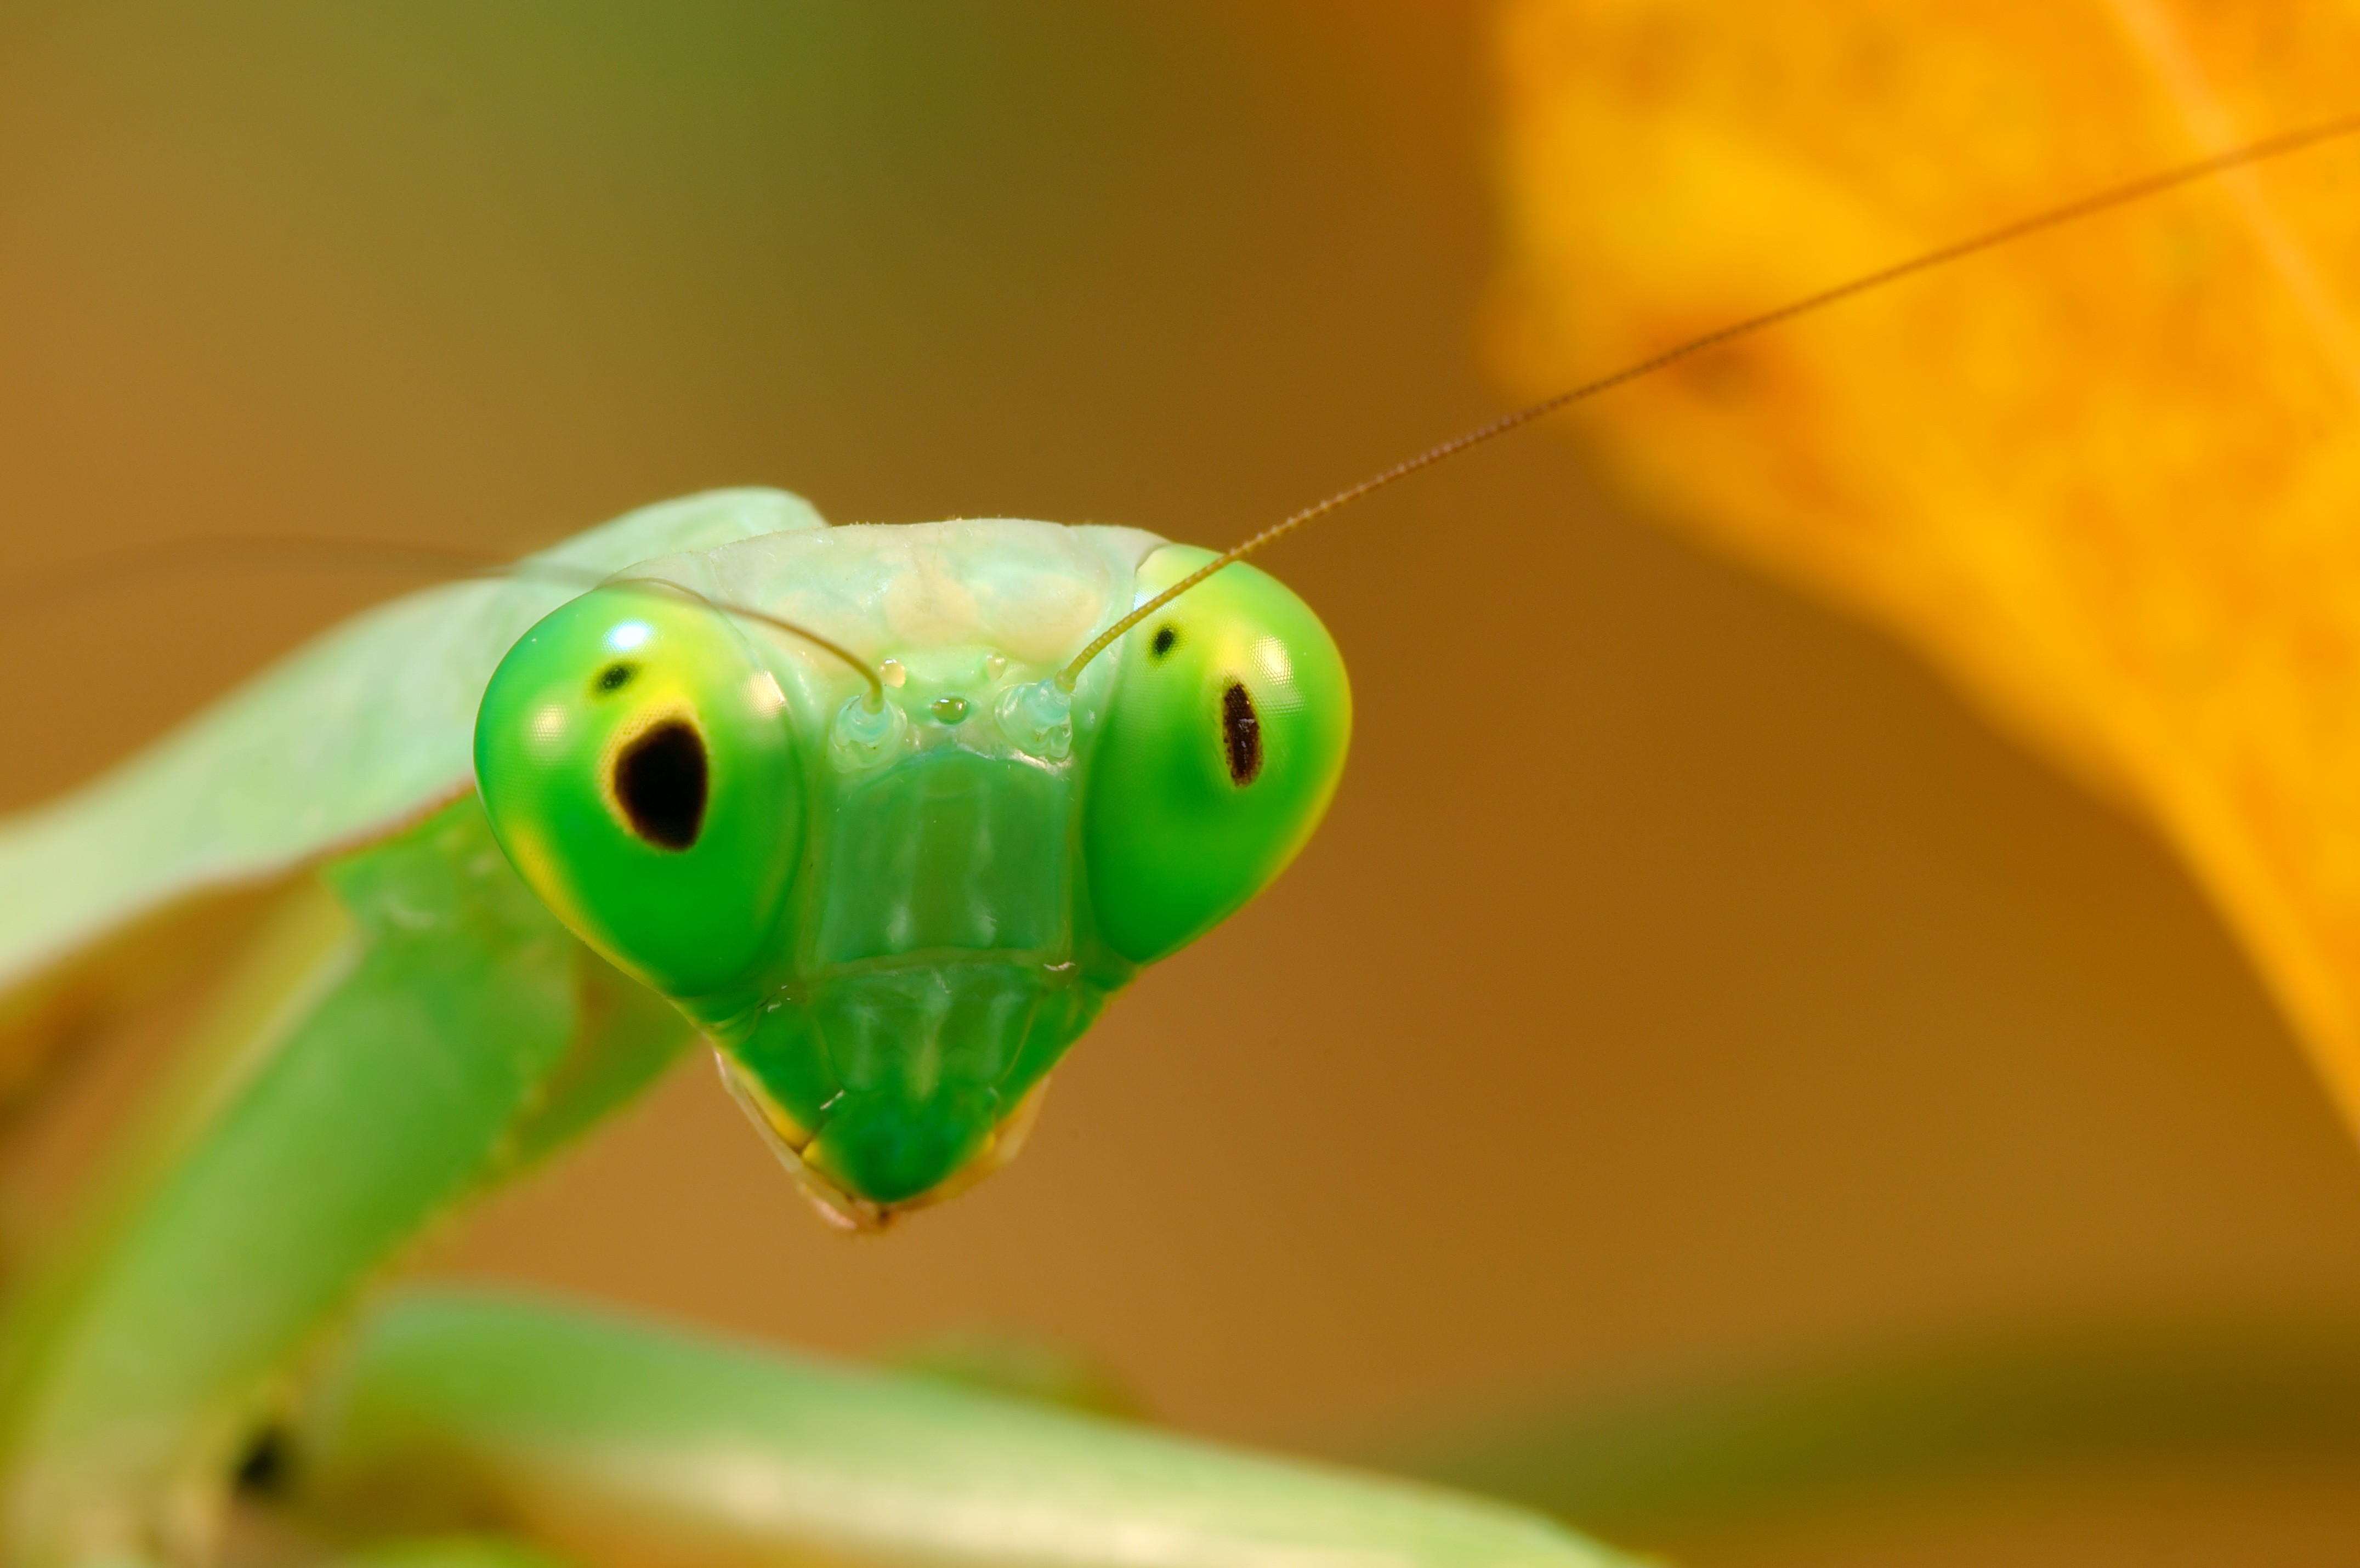 Snake Eyes Hd Wallpapers Wallpaper Mantis Green Animals 9966